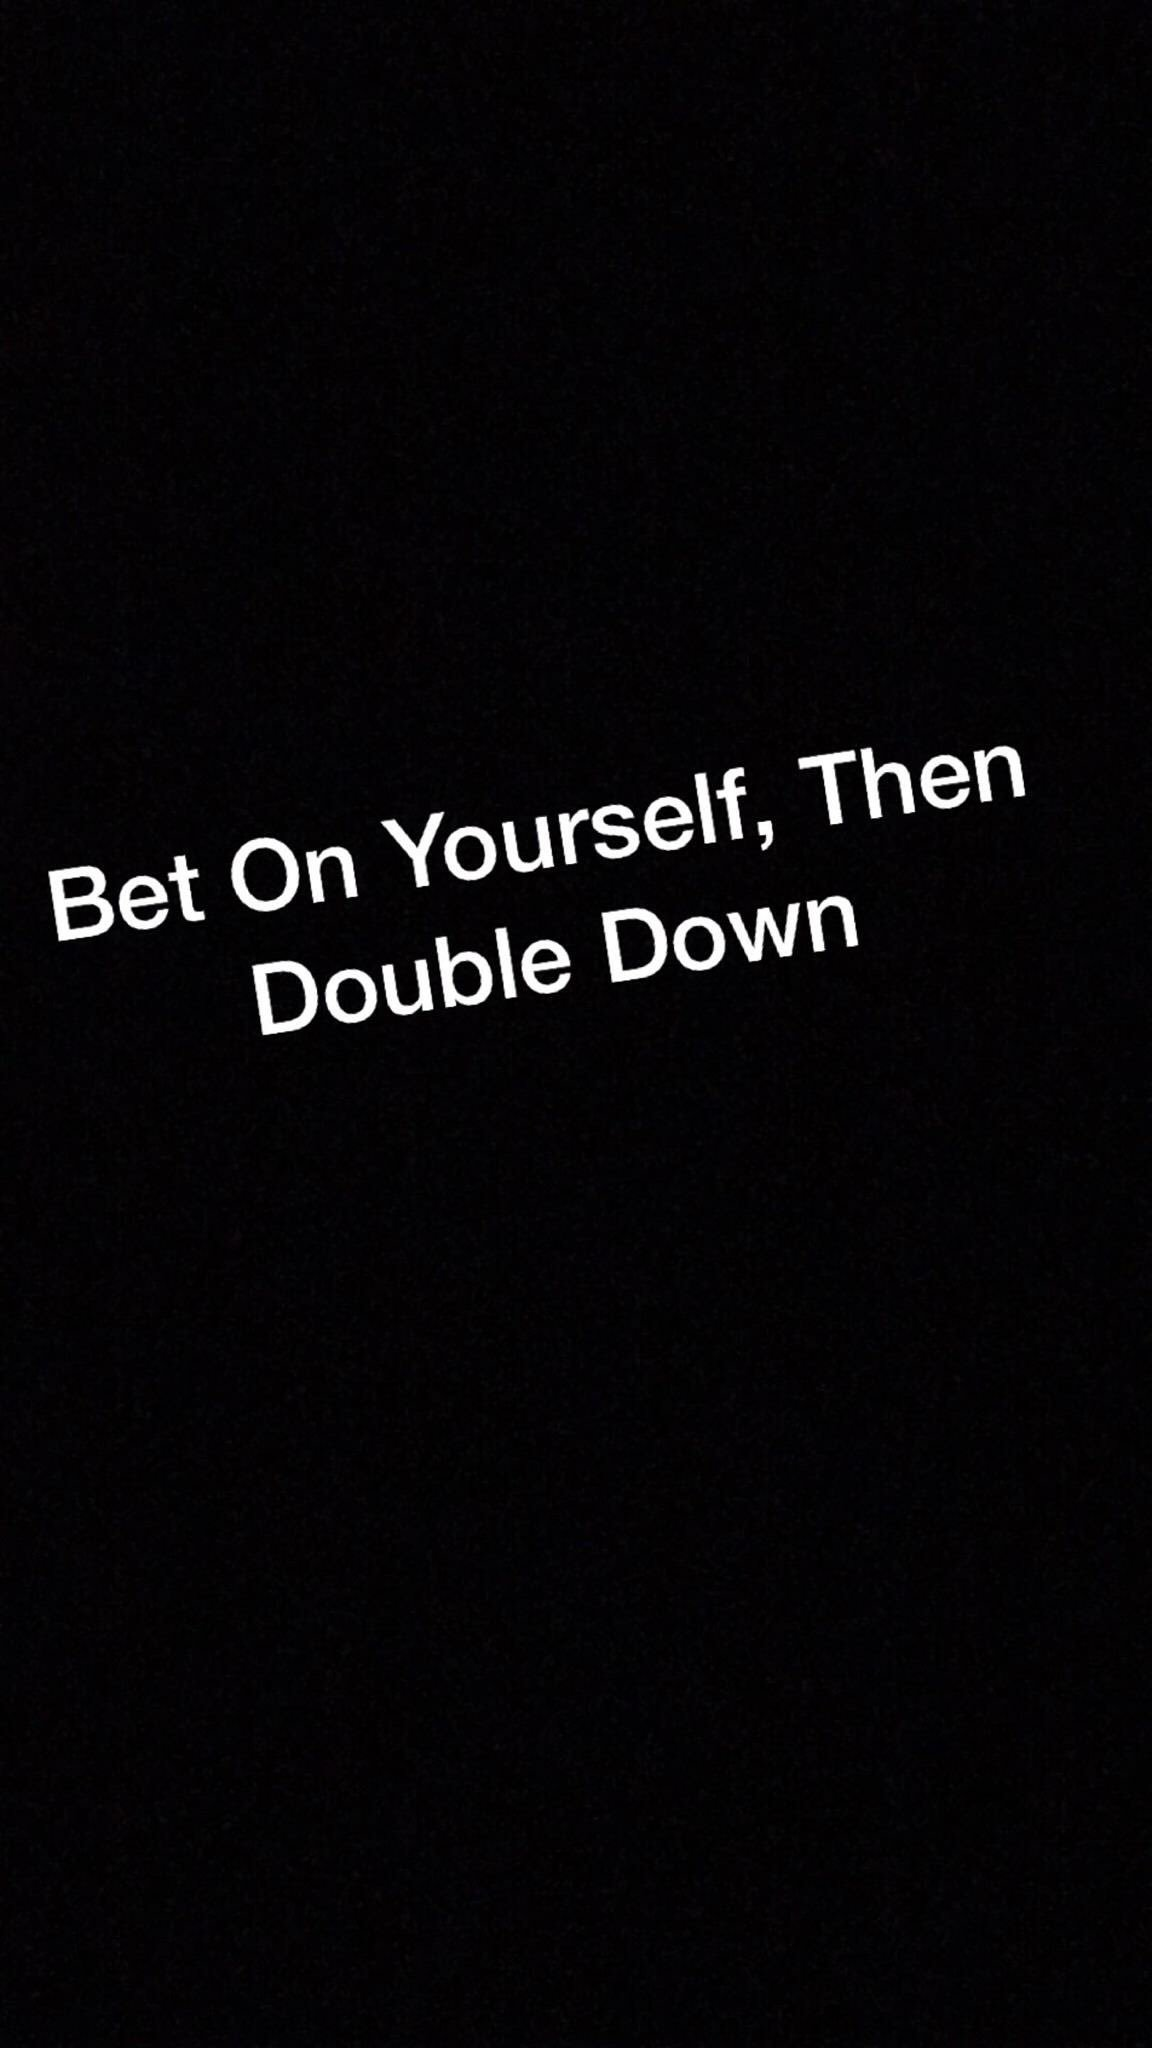 Double down on a bet binary options trading signals 2021 form